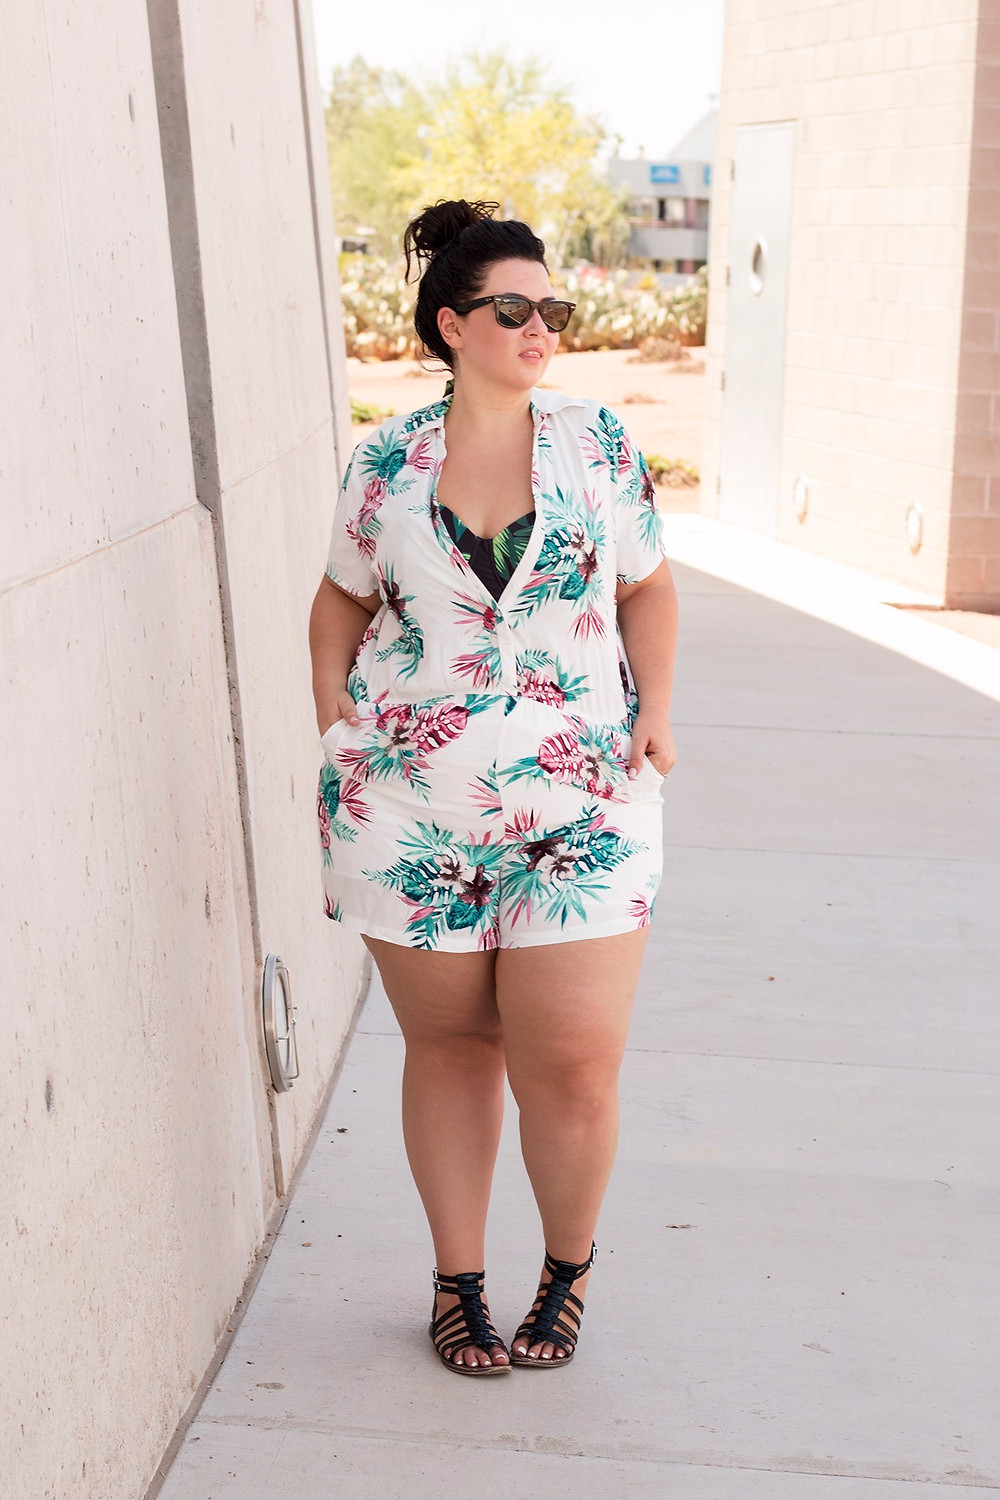 gwynnie bee plus size ootd sometimes glam crystal coons fashion what to wear